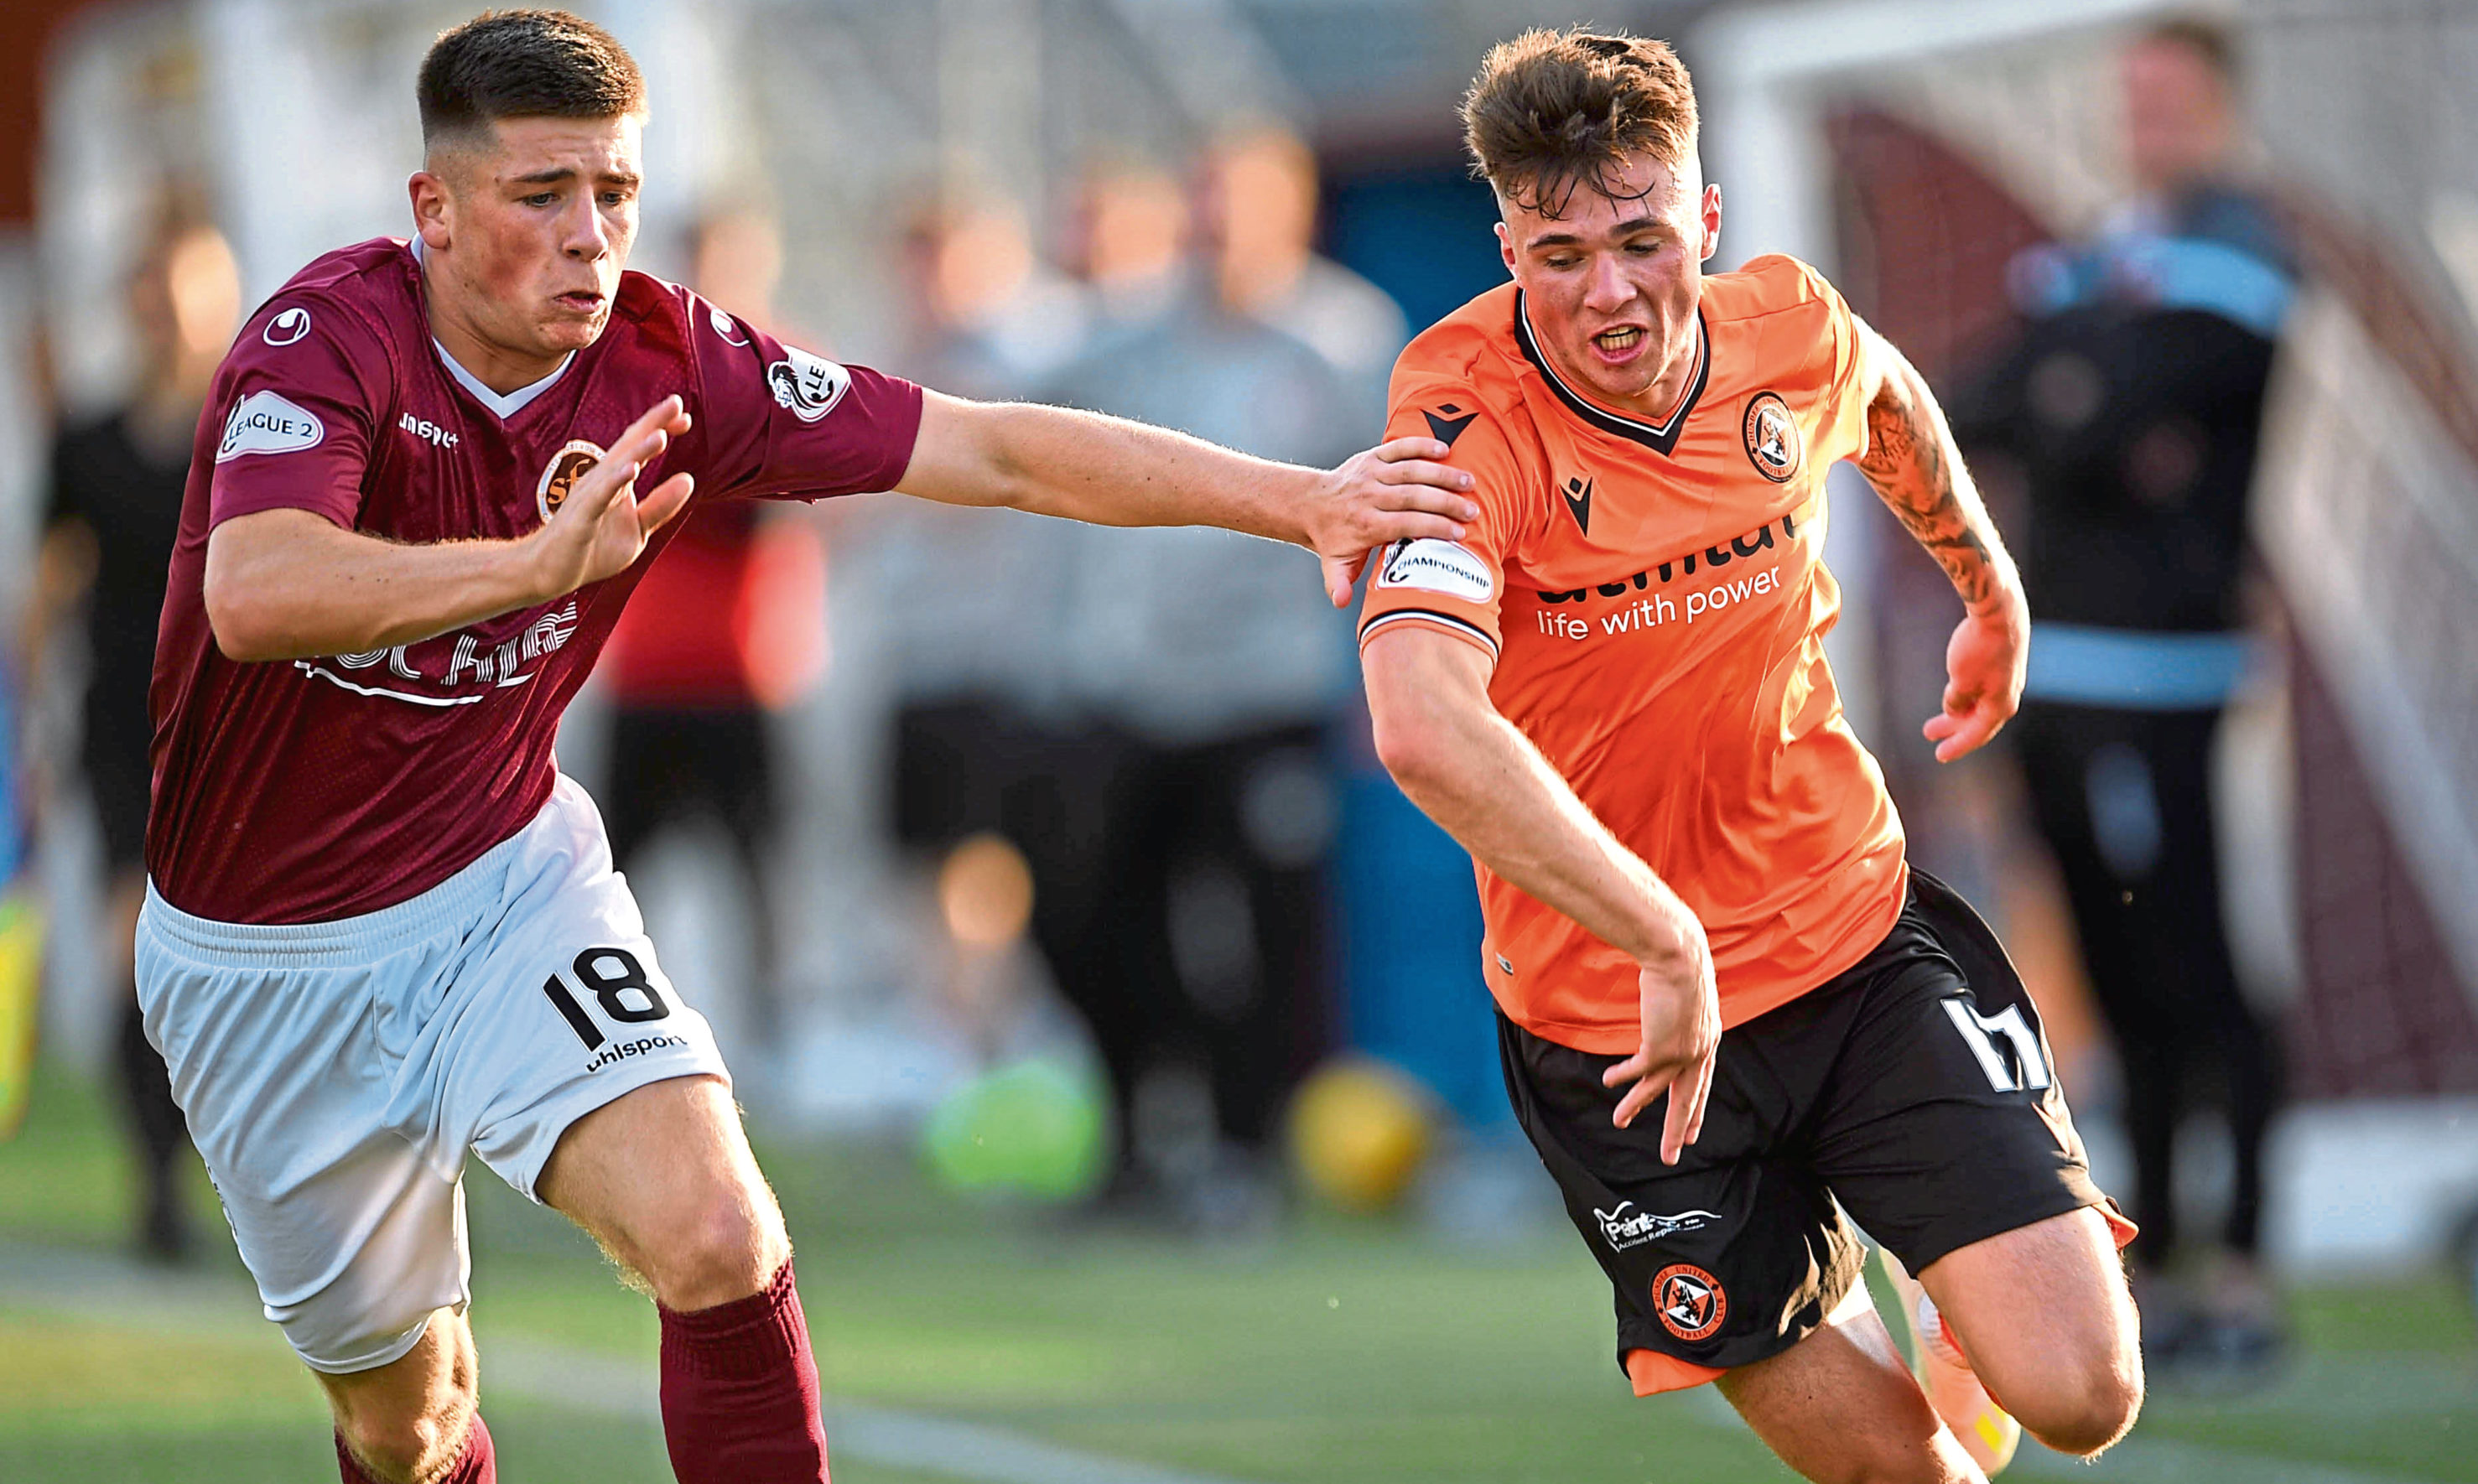 Twenty-one-year-old left-back Jamie Robson (right) has signed a new contract that will keep him at Tannadice until the summer of 2022.